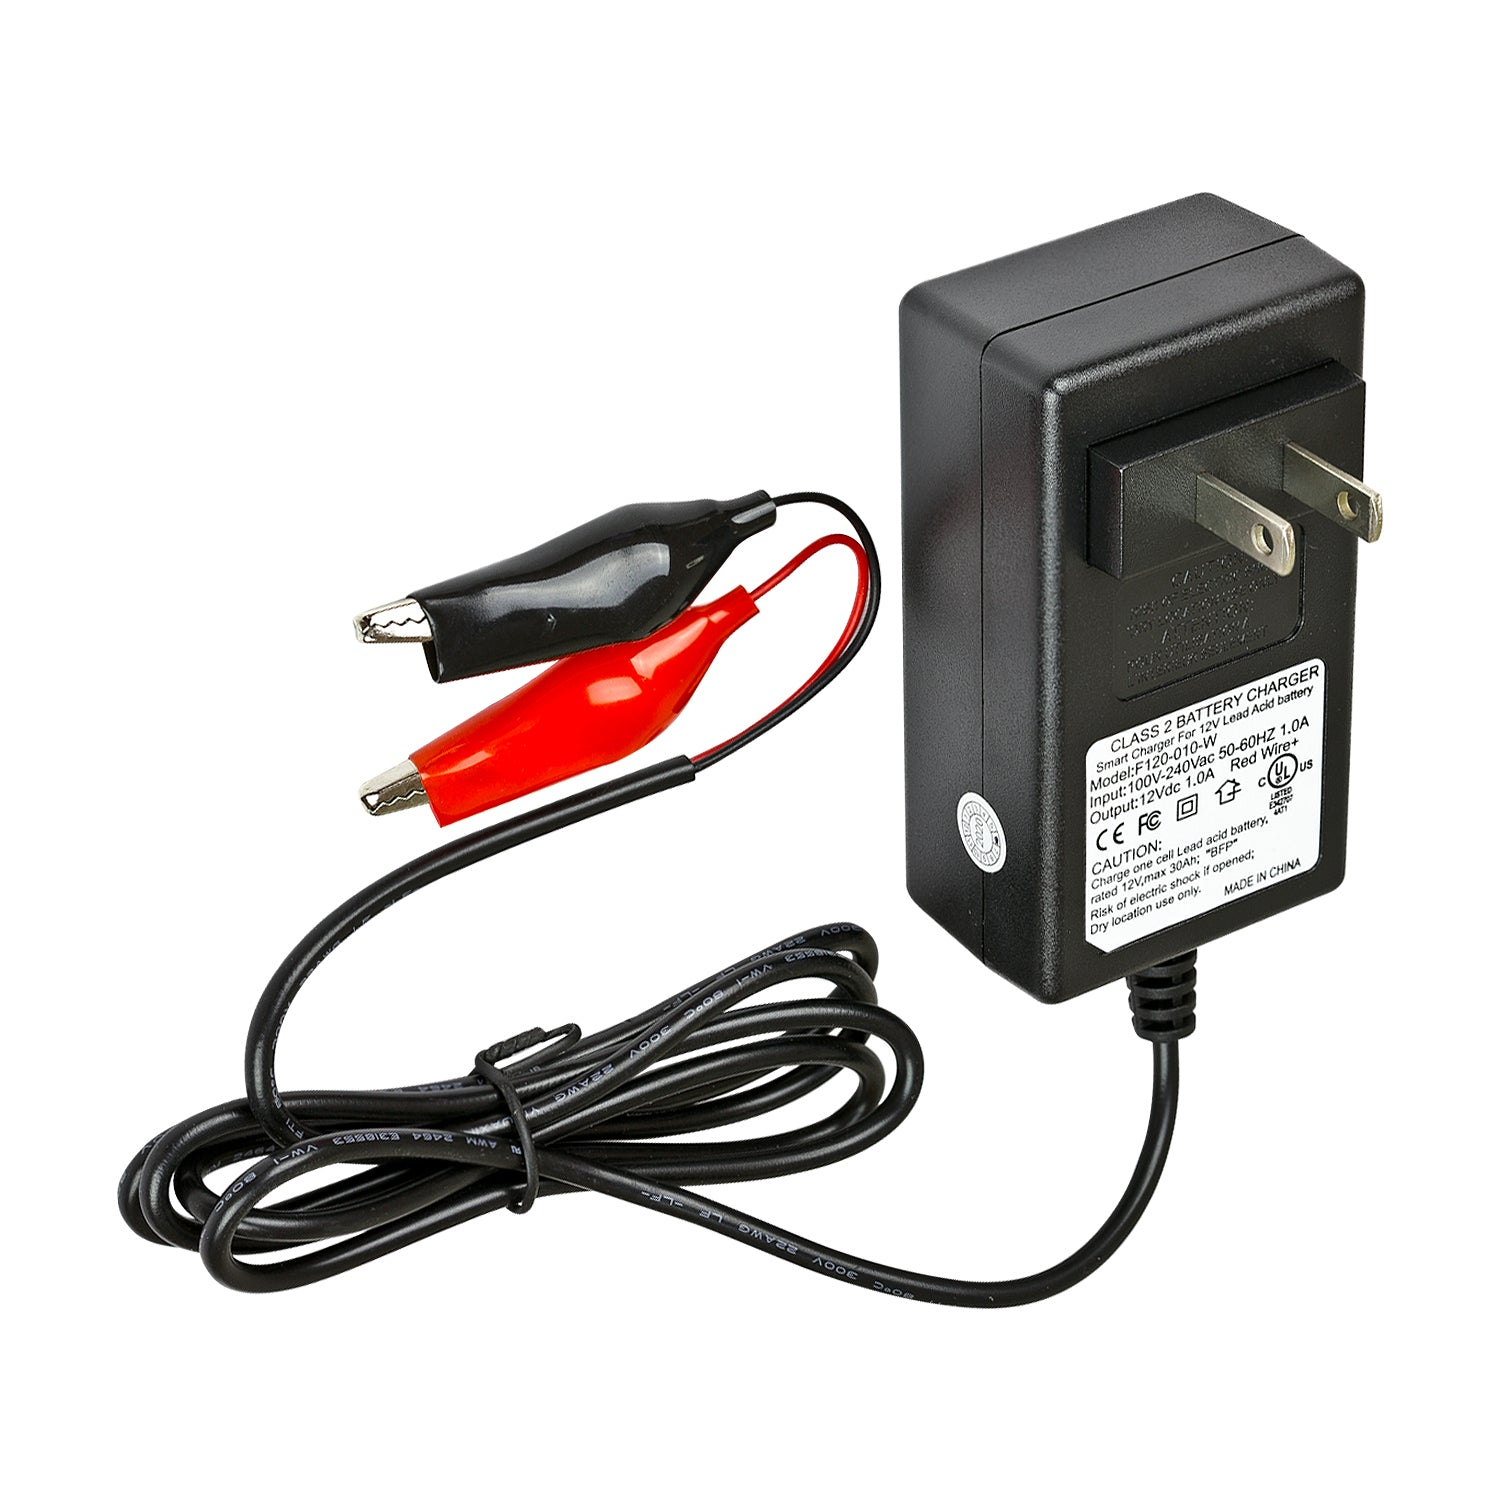 12 Volt 1 AmpH Battery Charger for Lead Acid Battery